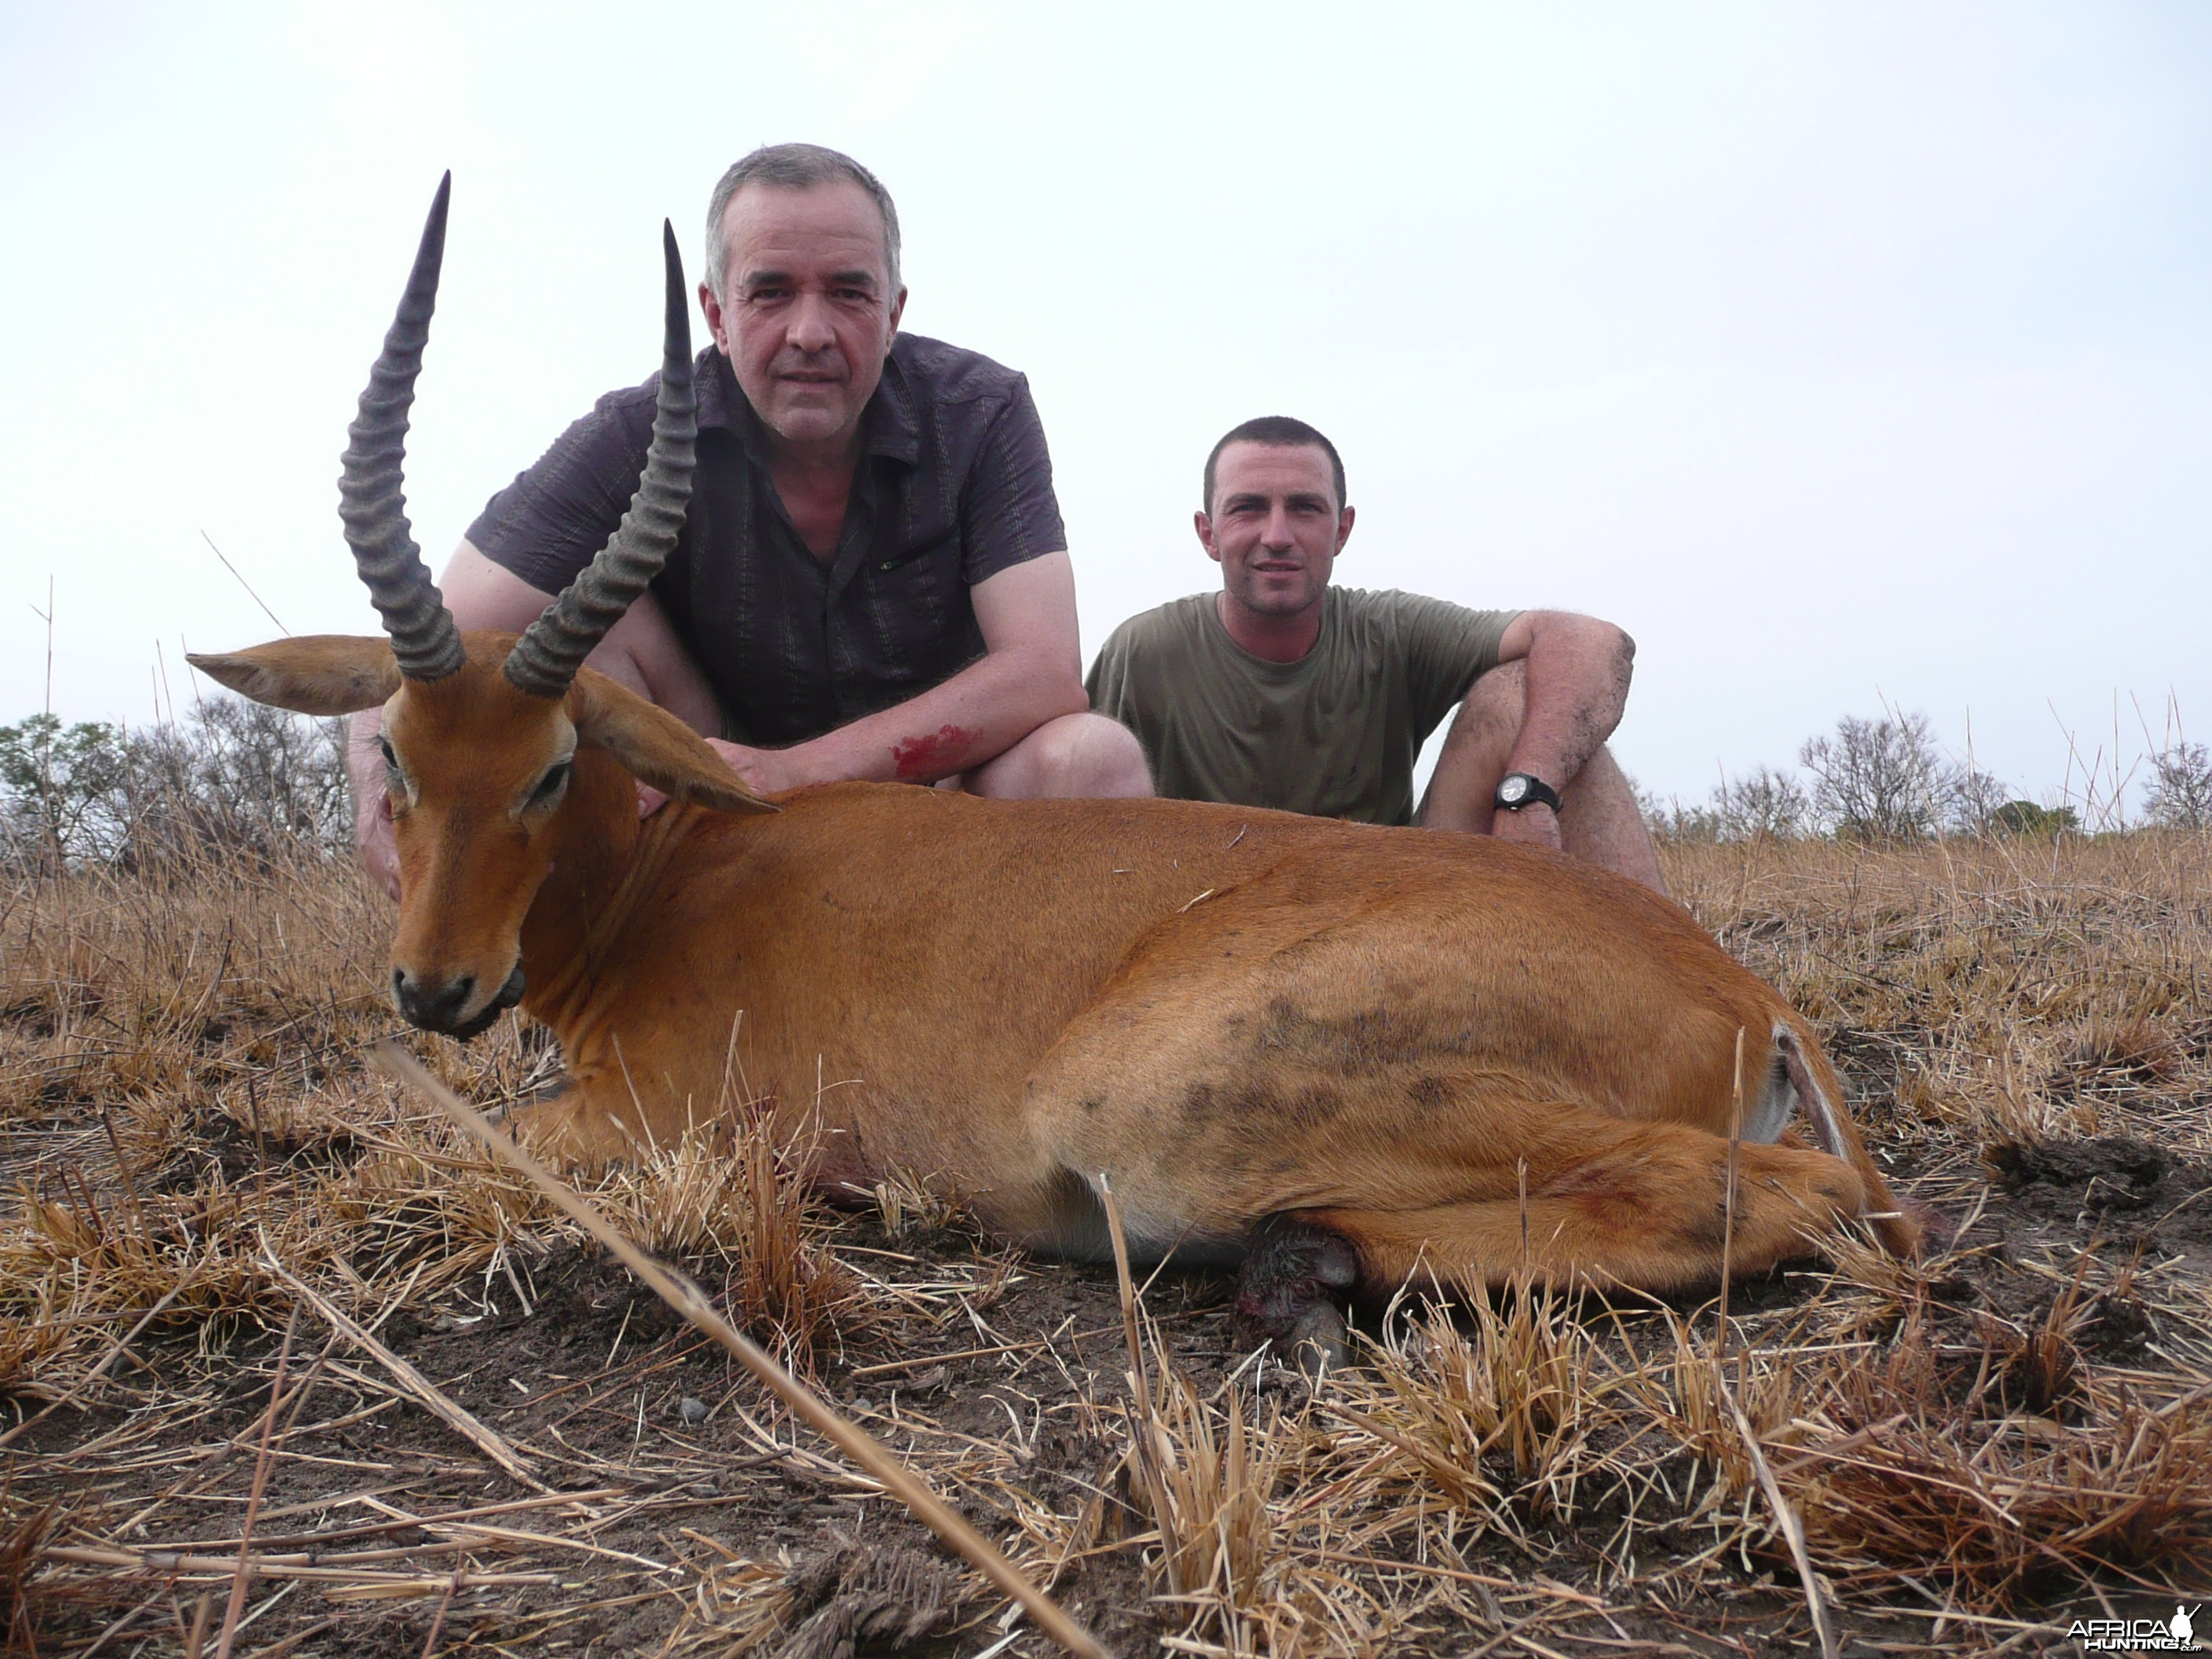 Western/Buffon Kob hunted in Benin with Club Faune